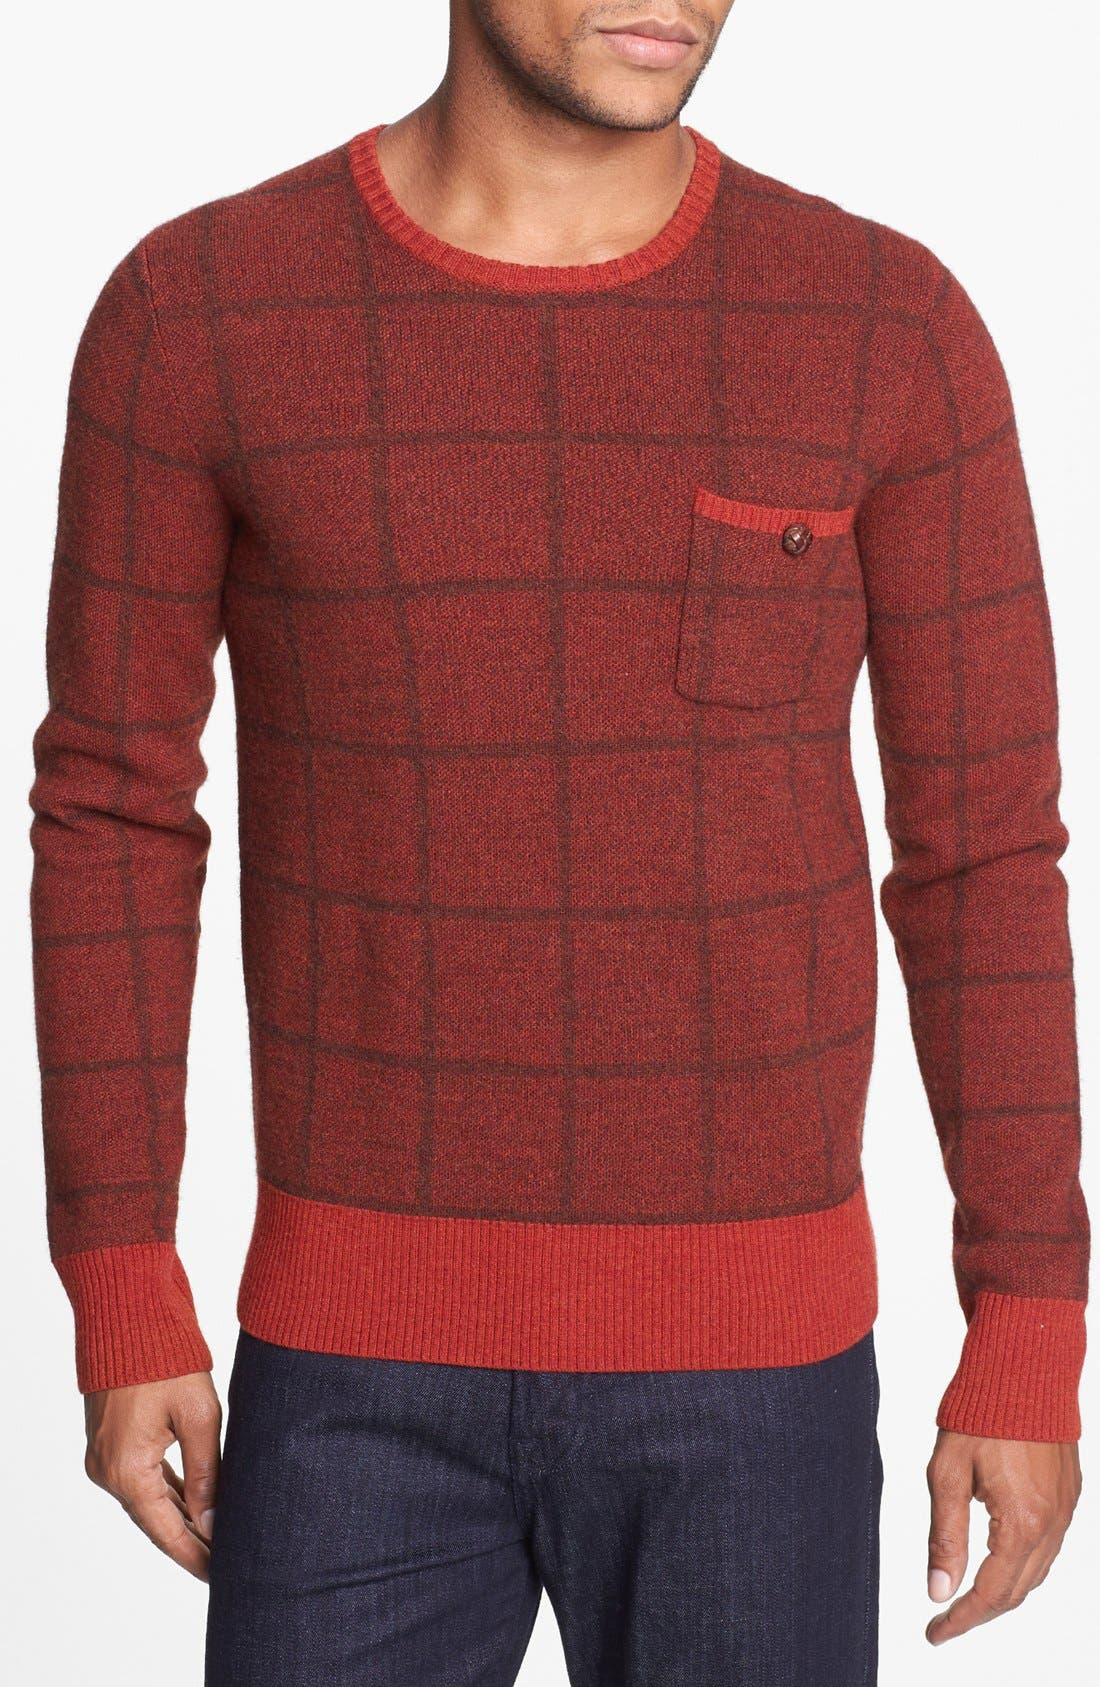 Main Image - J. Press York Street Windowpane Merino Wool Crewneck Sweater